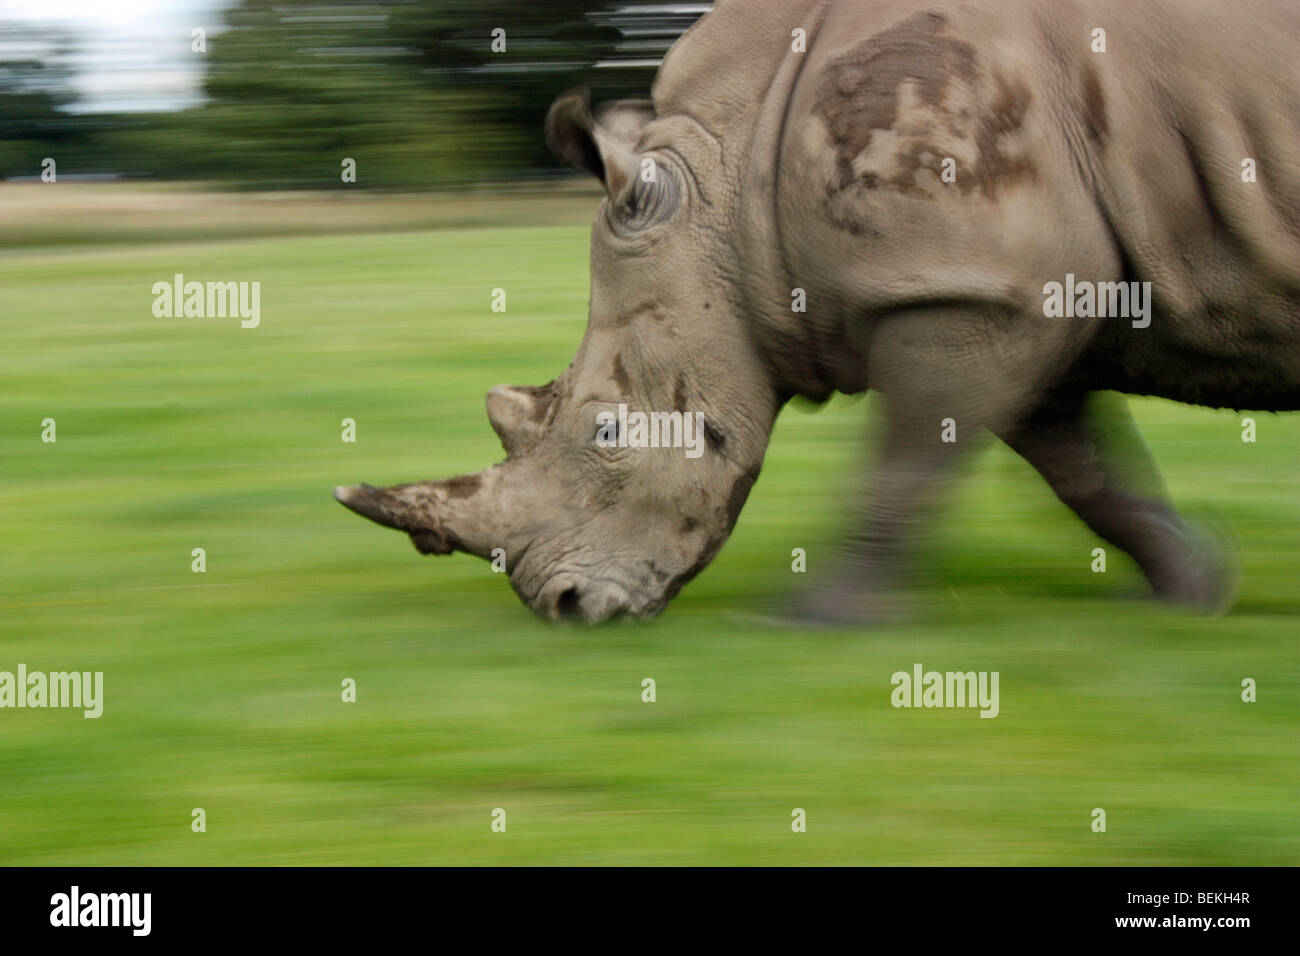 Motion blur effect of a charging white rhino - Stock Image